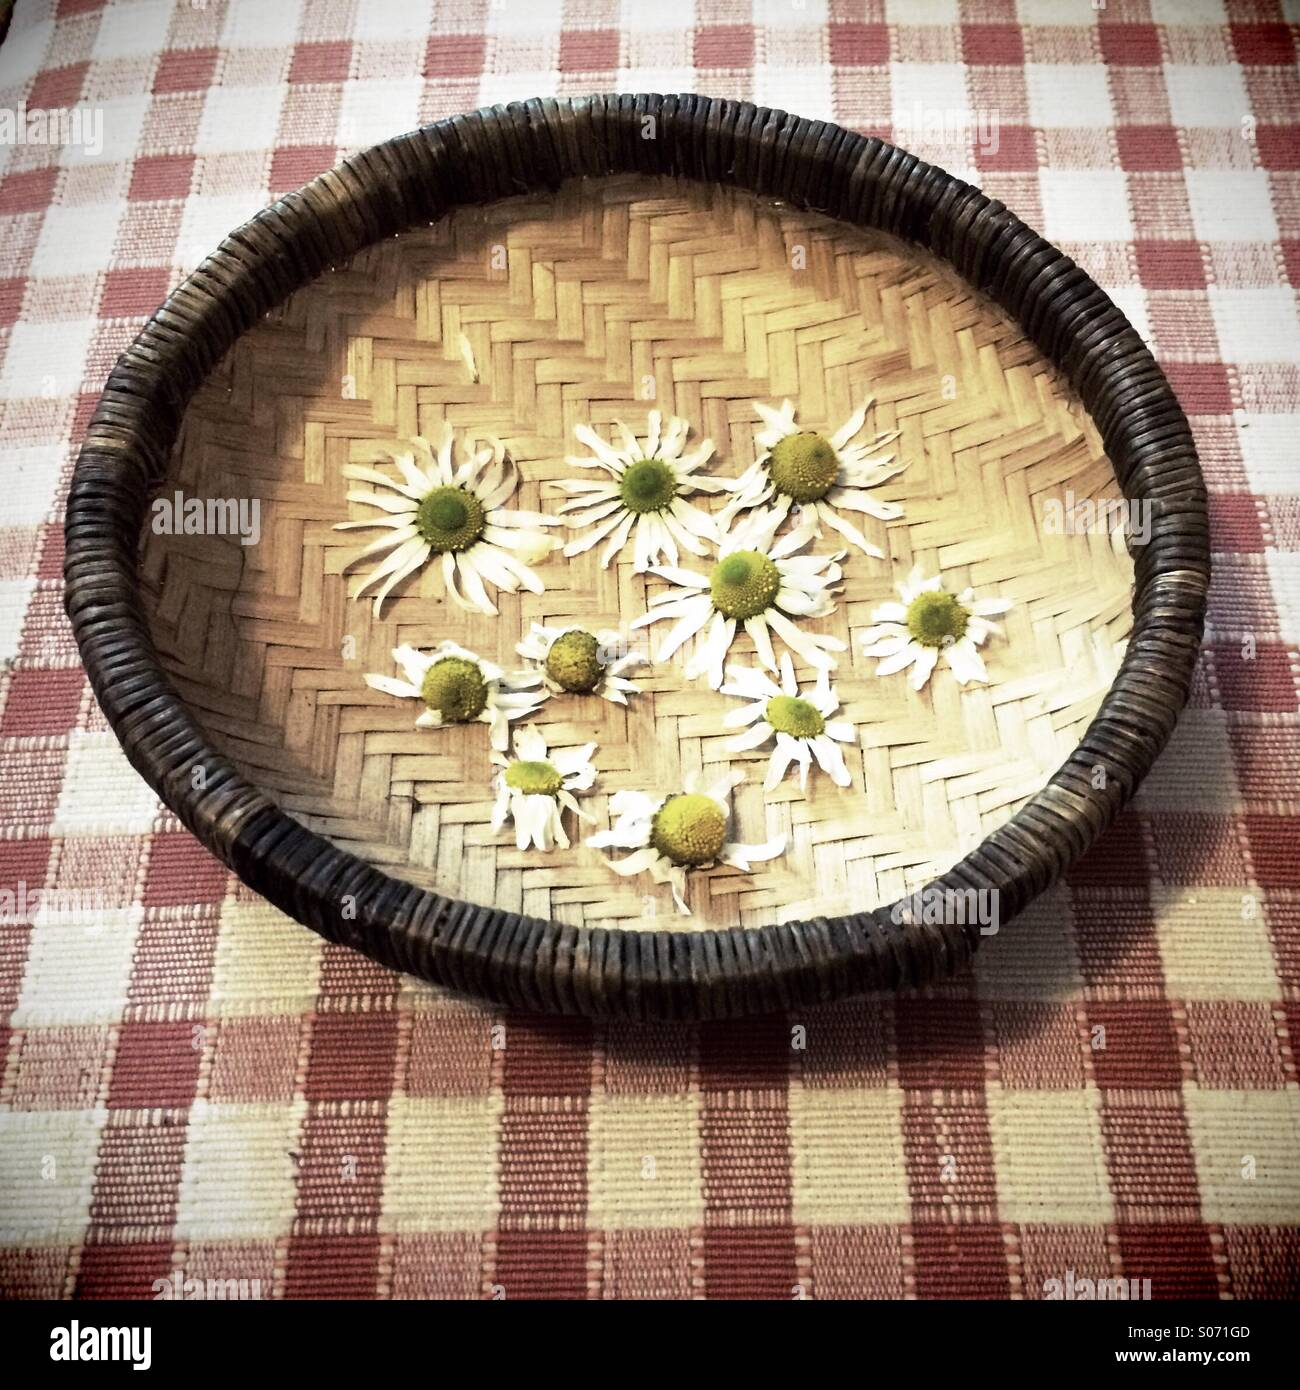 A woven bowl of camomile flowers on a checked tablecloth - Stock Image